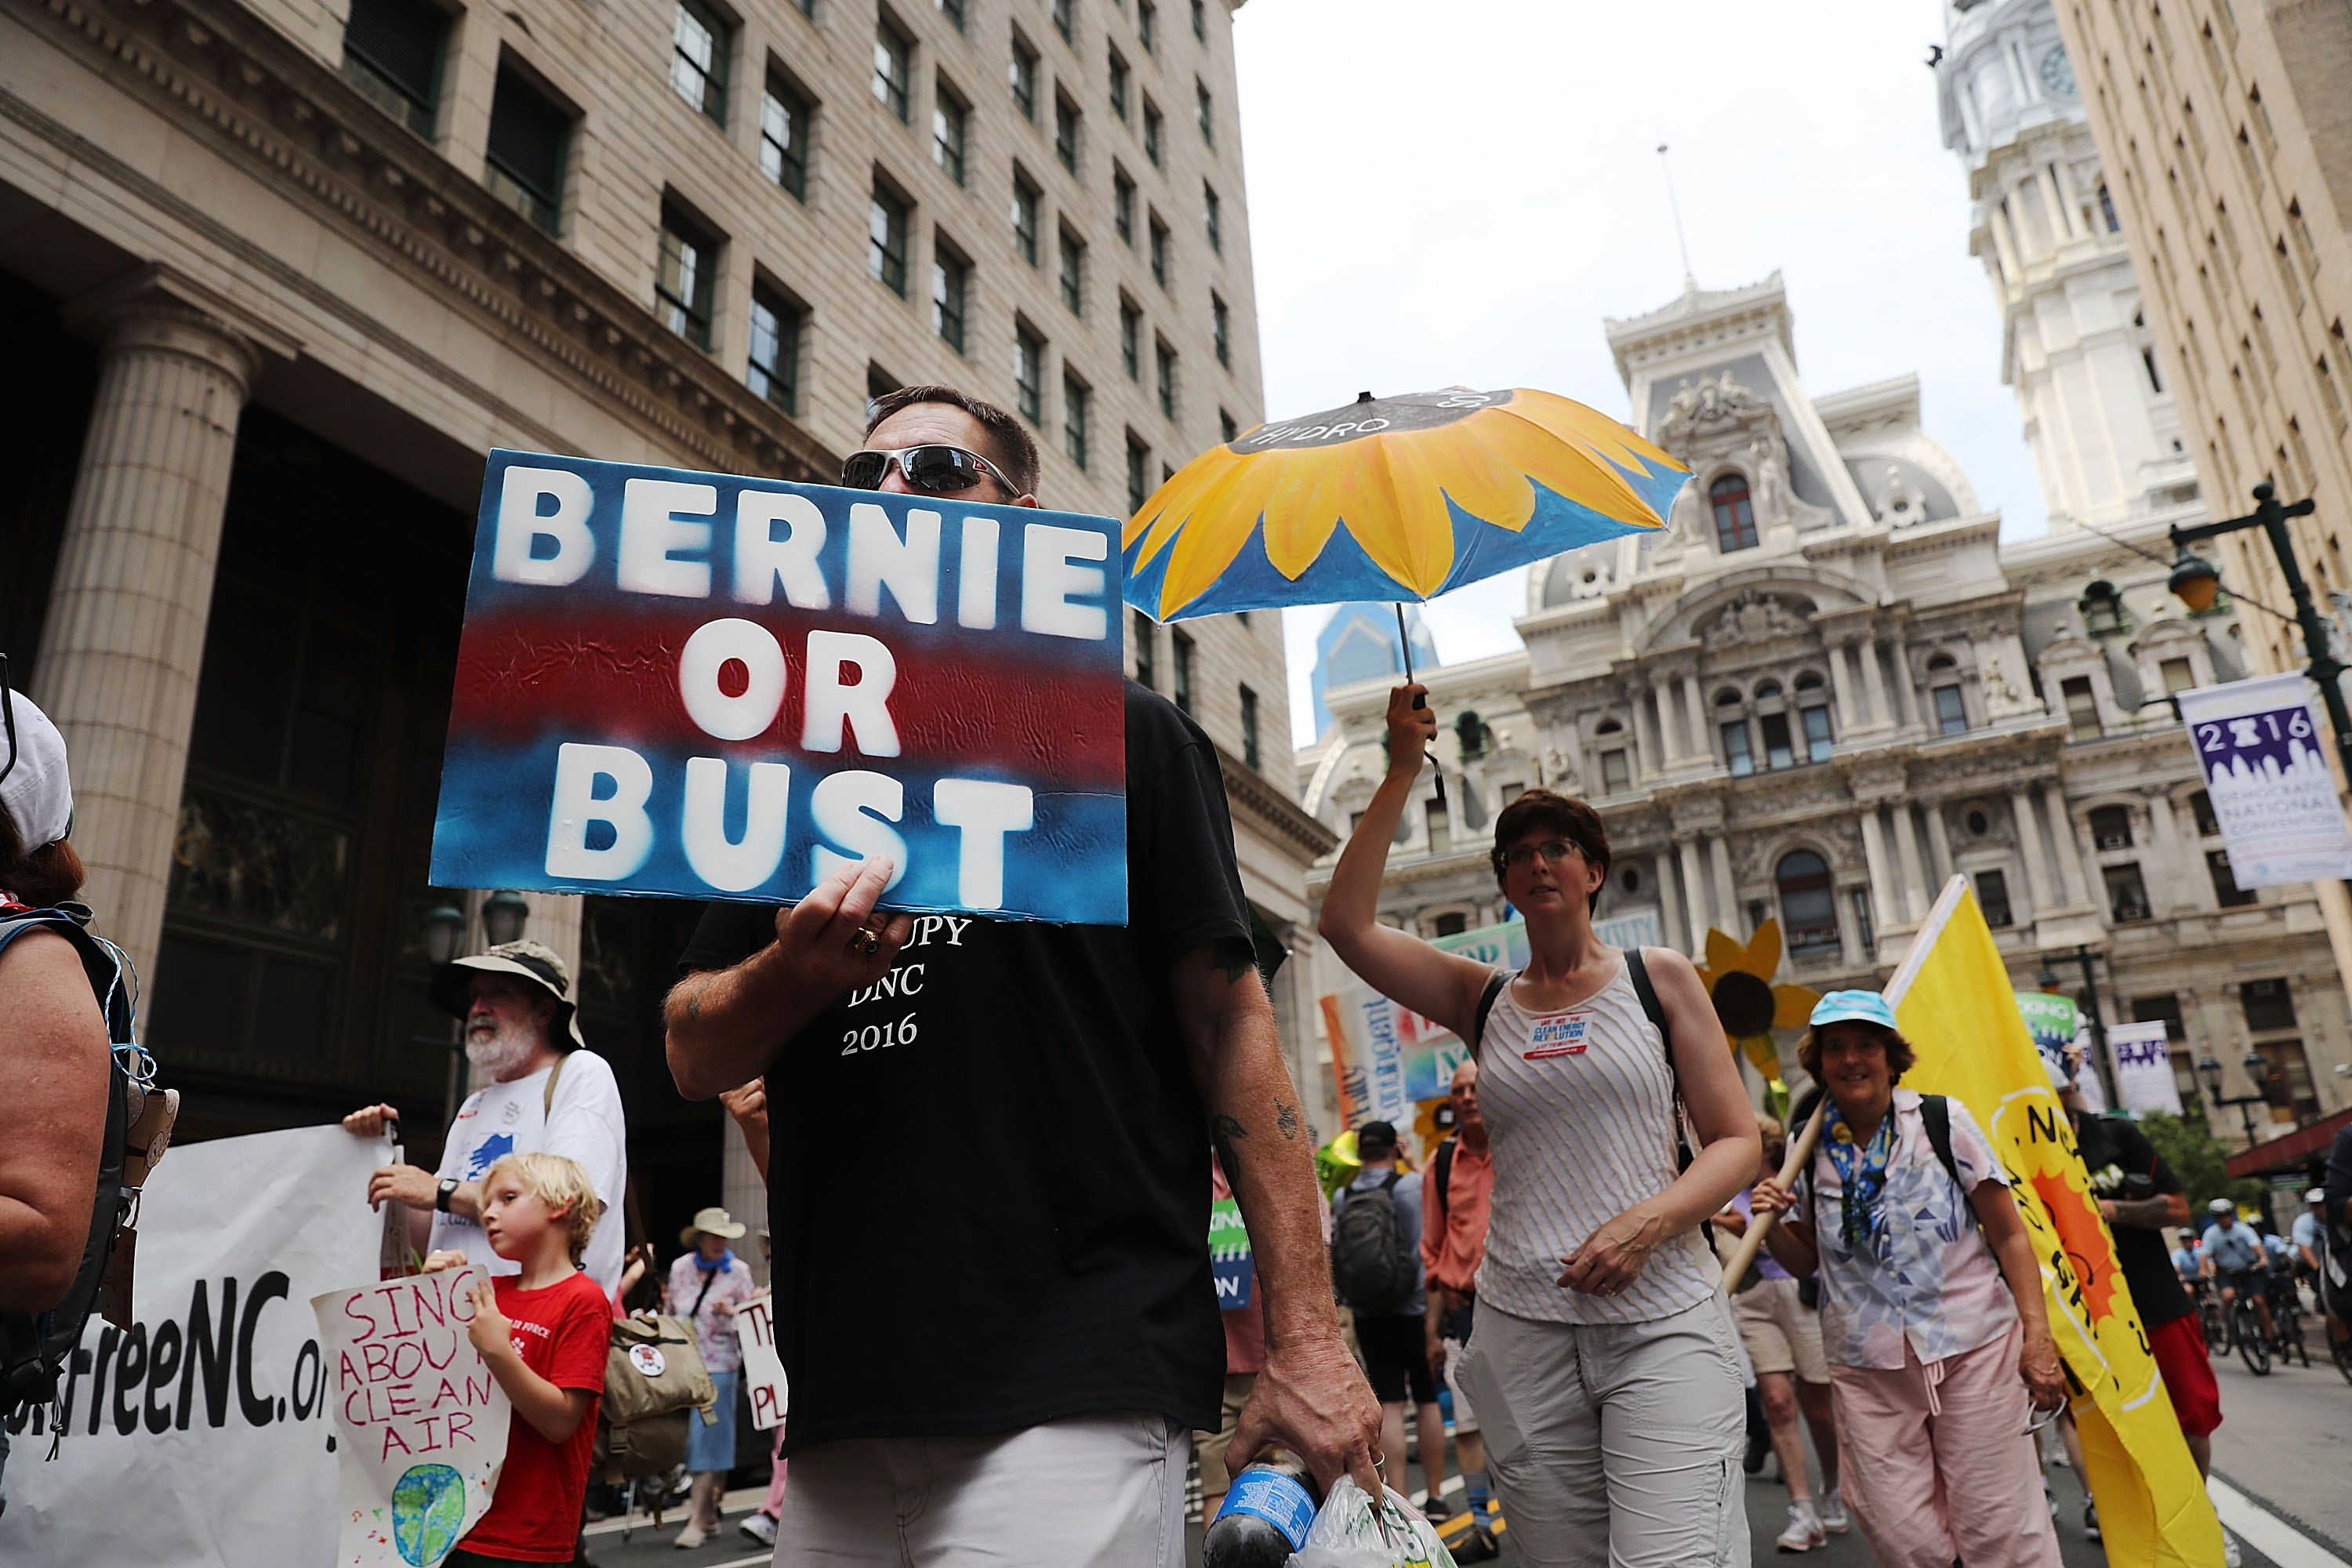 Hundreds of environmentalists and Bernie Sanders supporters march through downtown Philadelphia as the city gears up for the Democratic National Convention. (Spencer Platt/Getty Images)